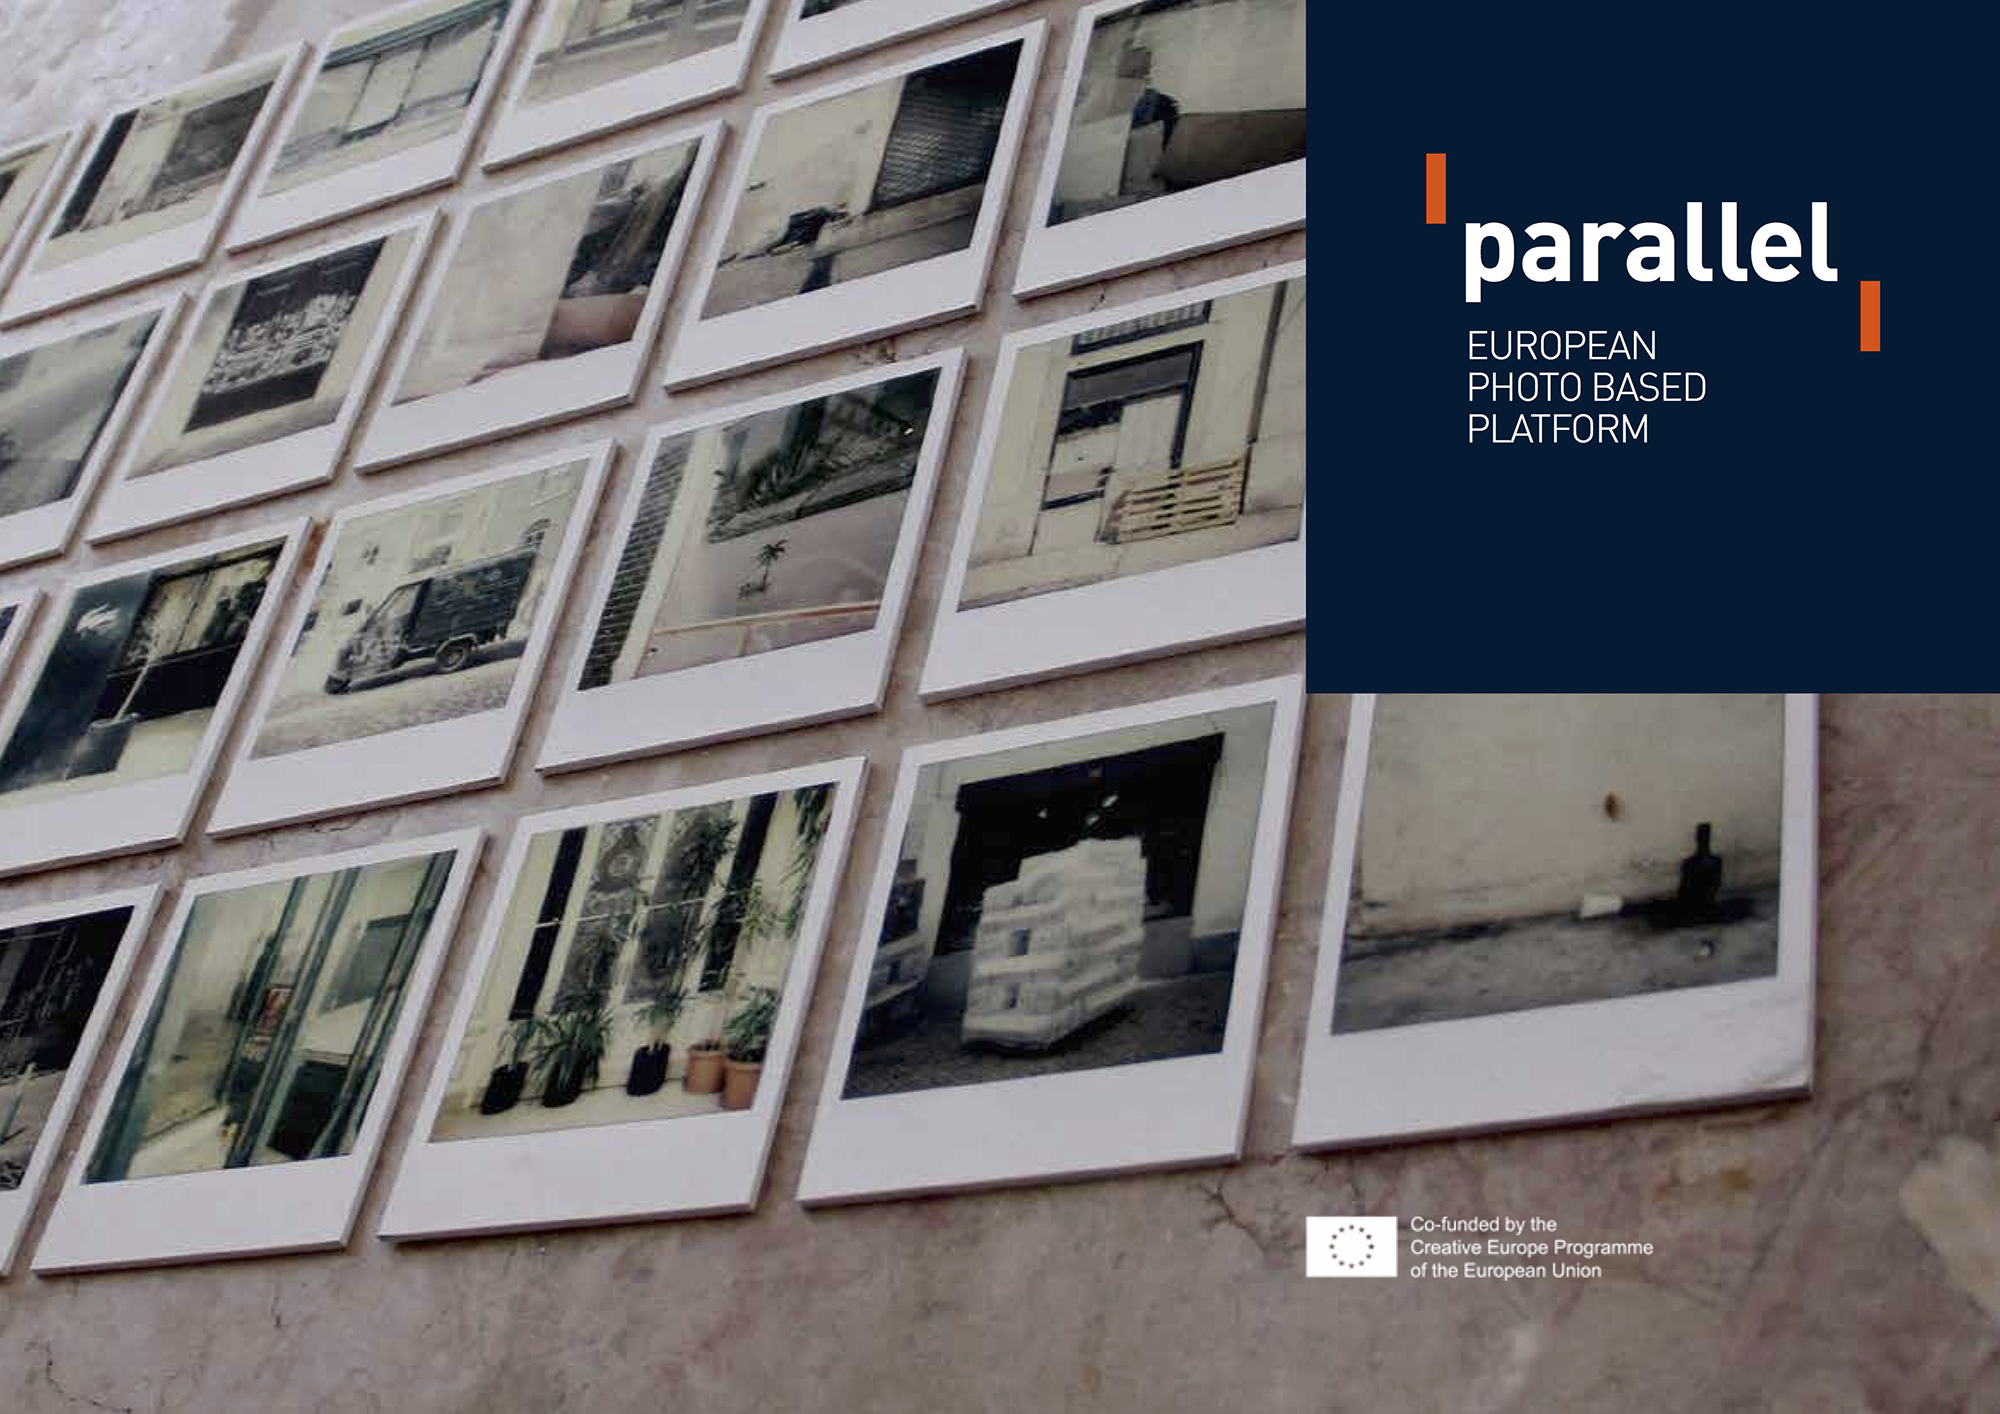 Launch: PARALLEL, European Photo Based Platform